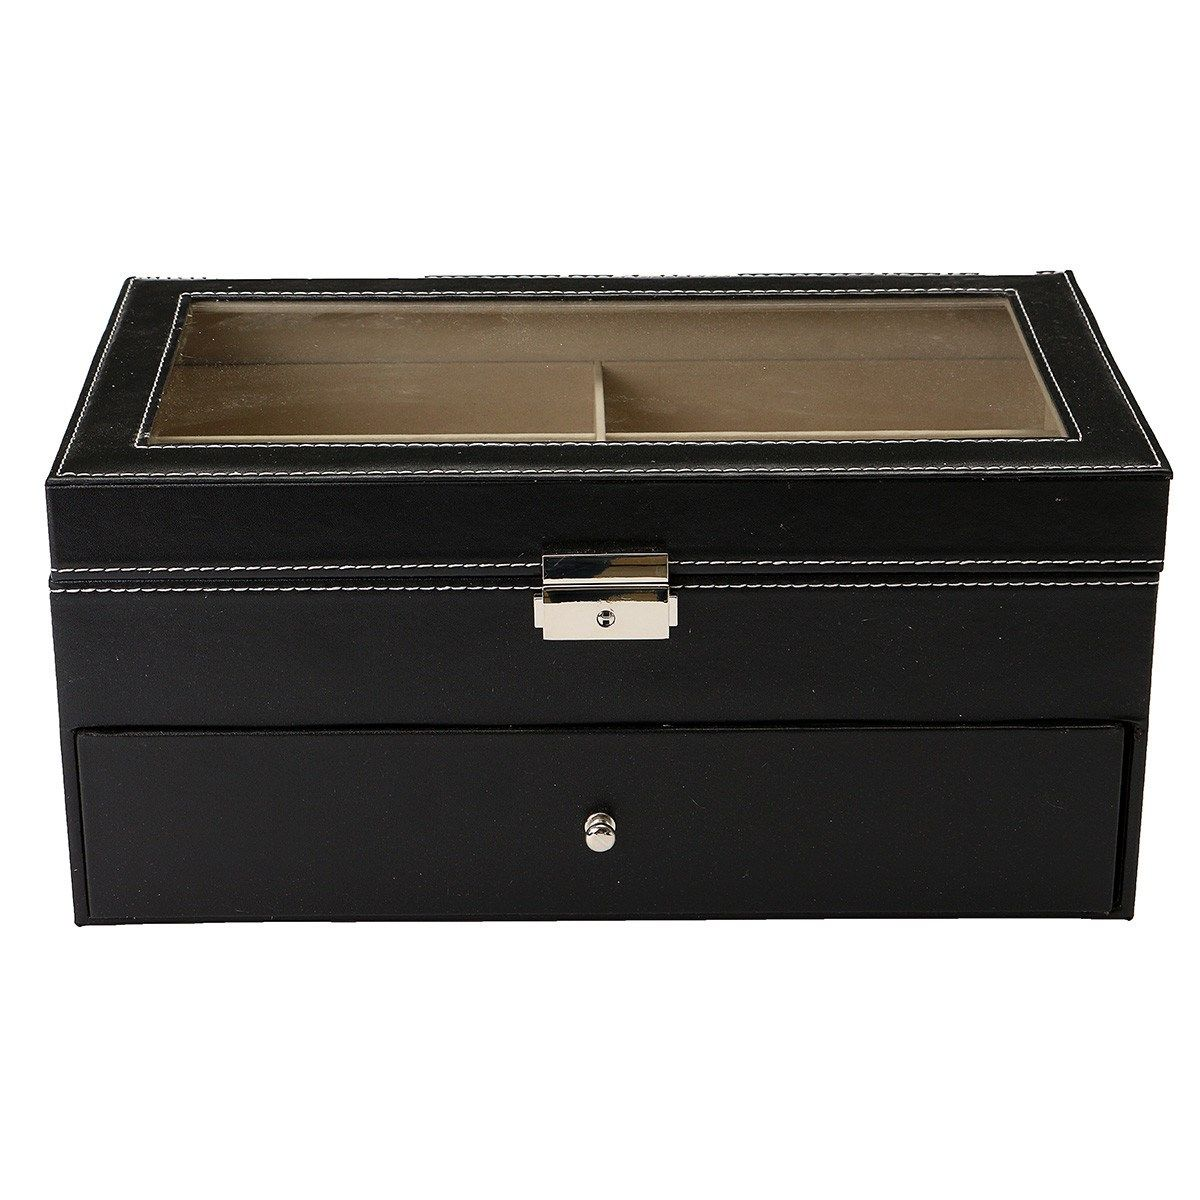 Boxes For Decoration And Crafts New 12 Slots Decorative Wooden Boxes Display Case Glasses